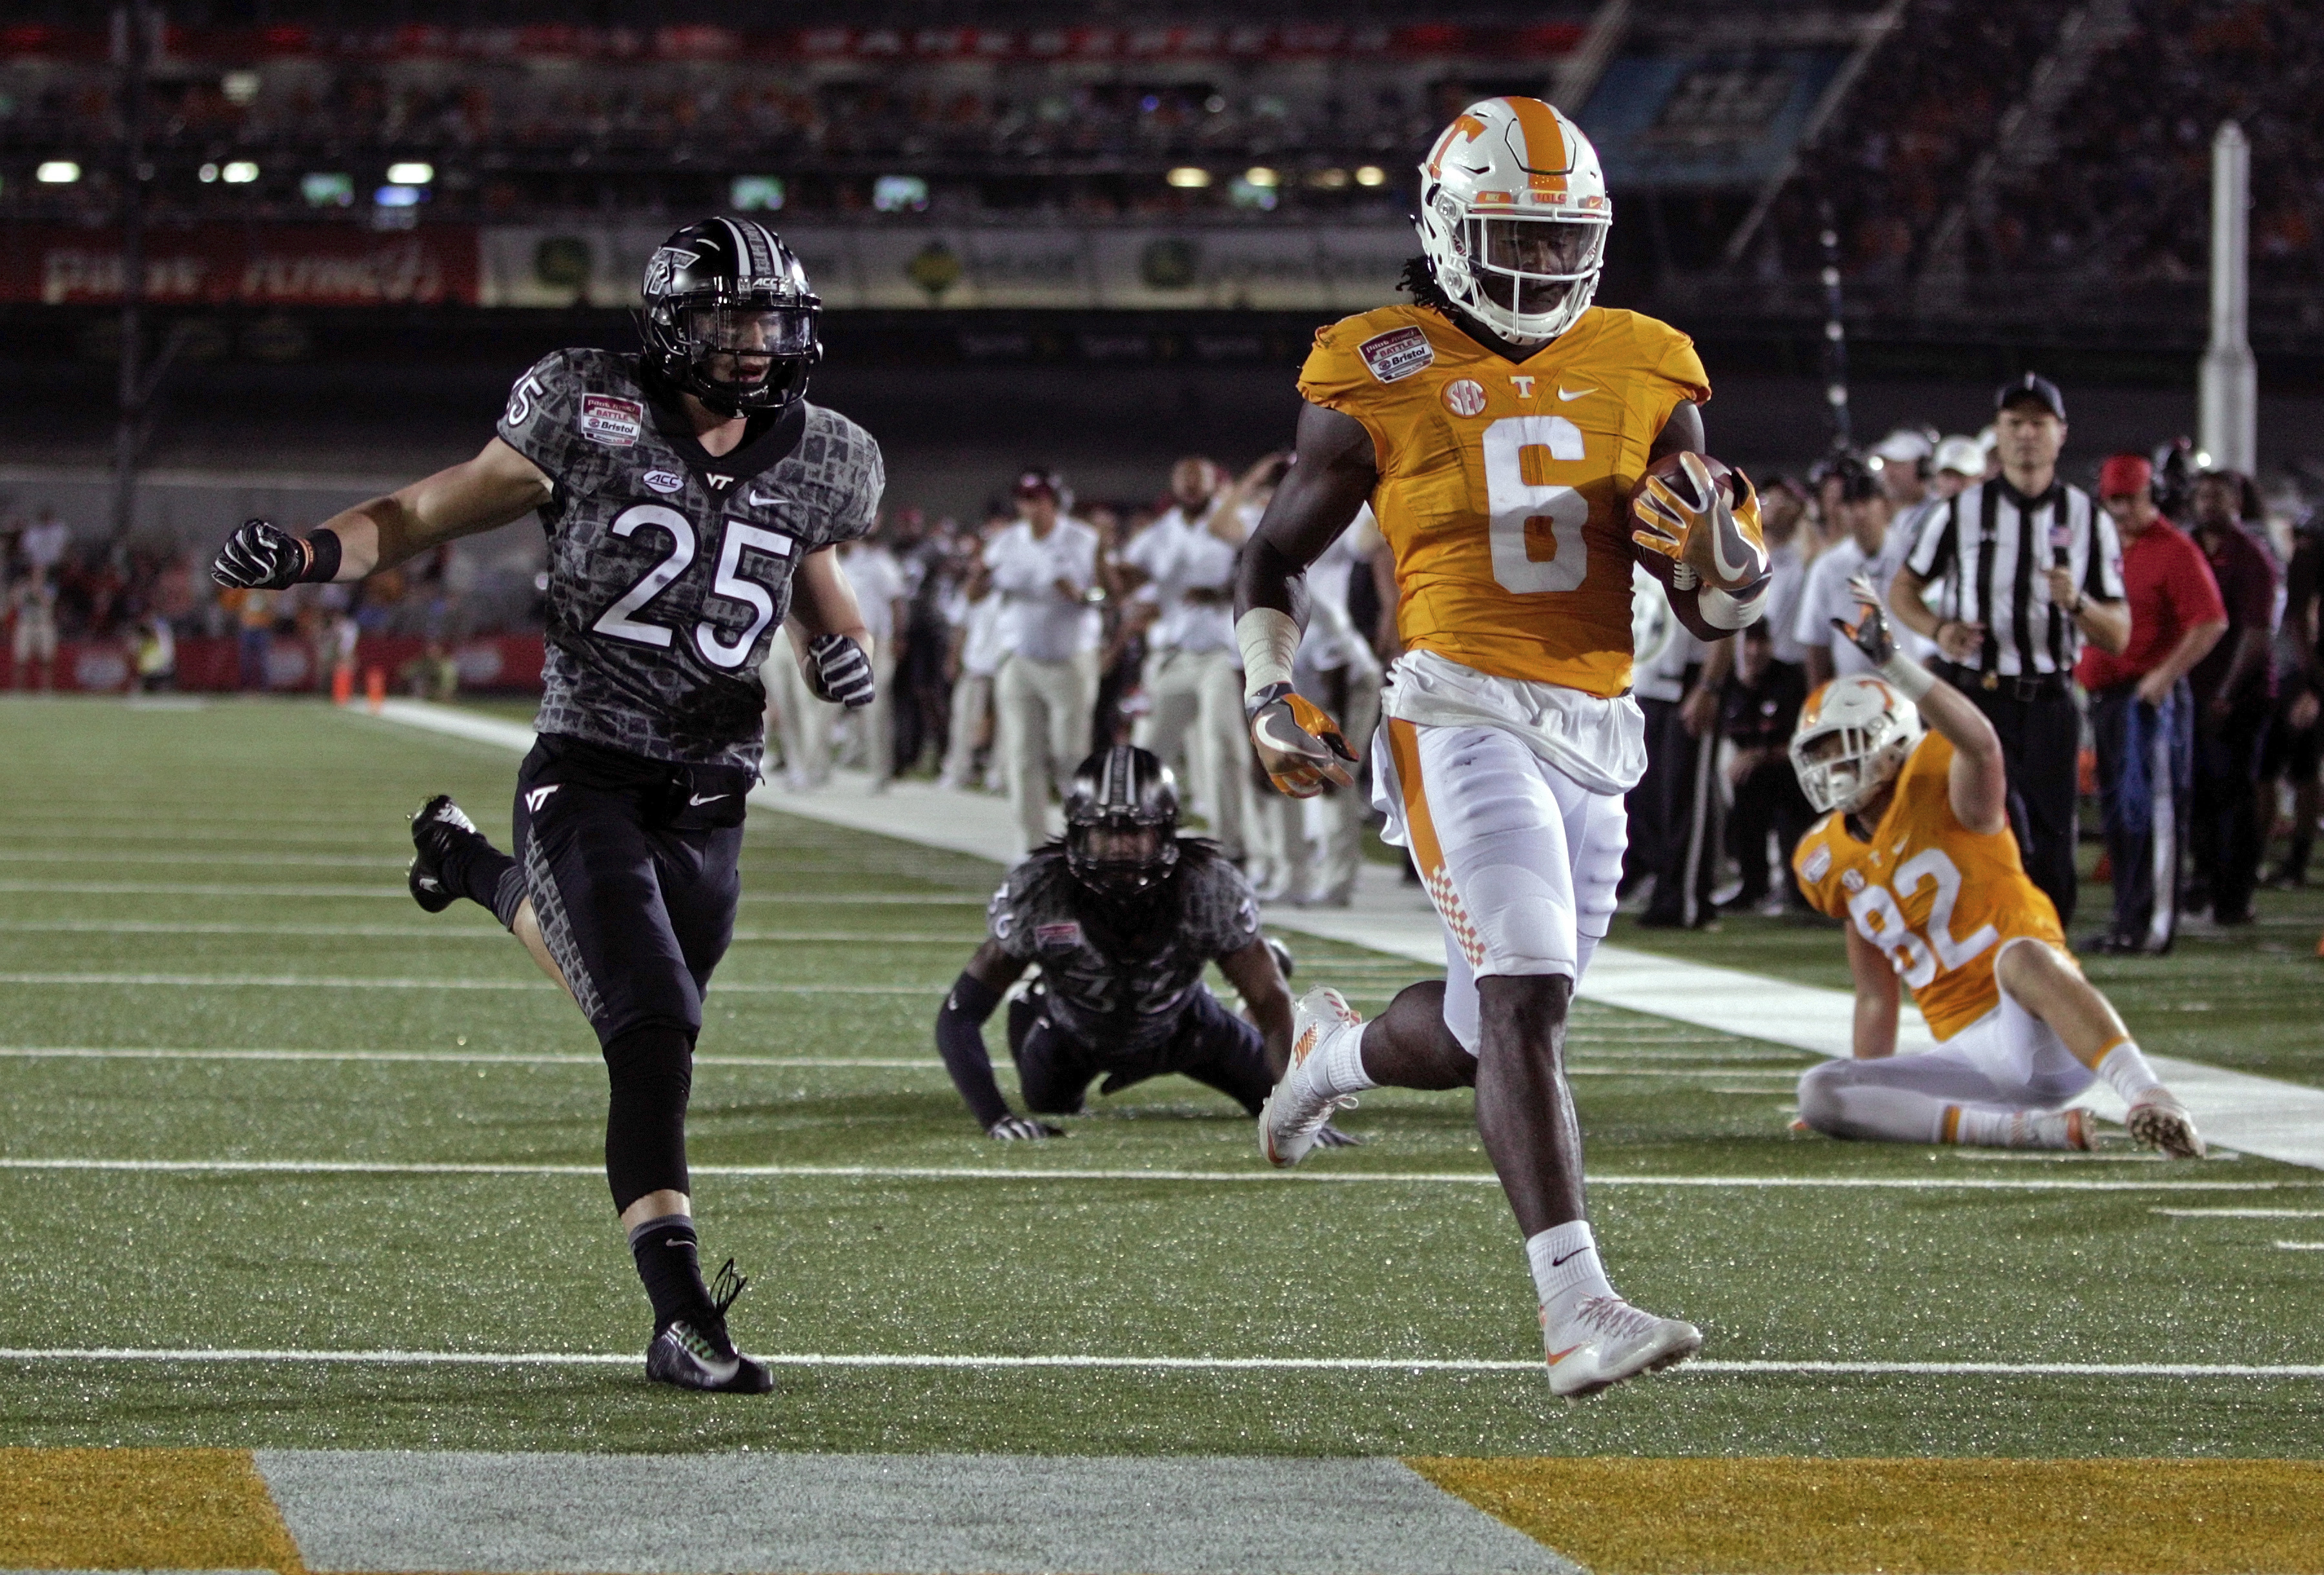 FILE - In this Sept. 10, 2016, file photo, Tennessee running back Alvin Kamara (6) scores a touchdown against Virginia Tech in an NCAA college football game at Bristol Motor Speedway, in Bristol, Tenn. Tennessee, ranked 18th, just announced that Kamara wo